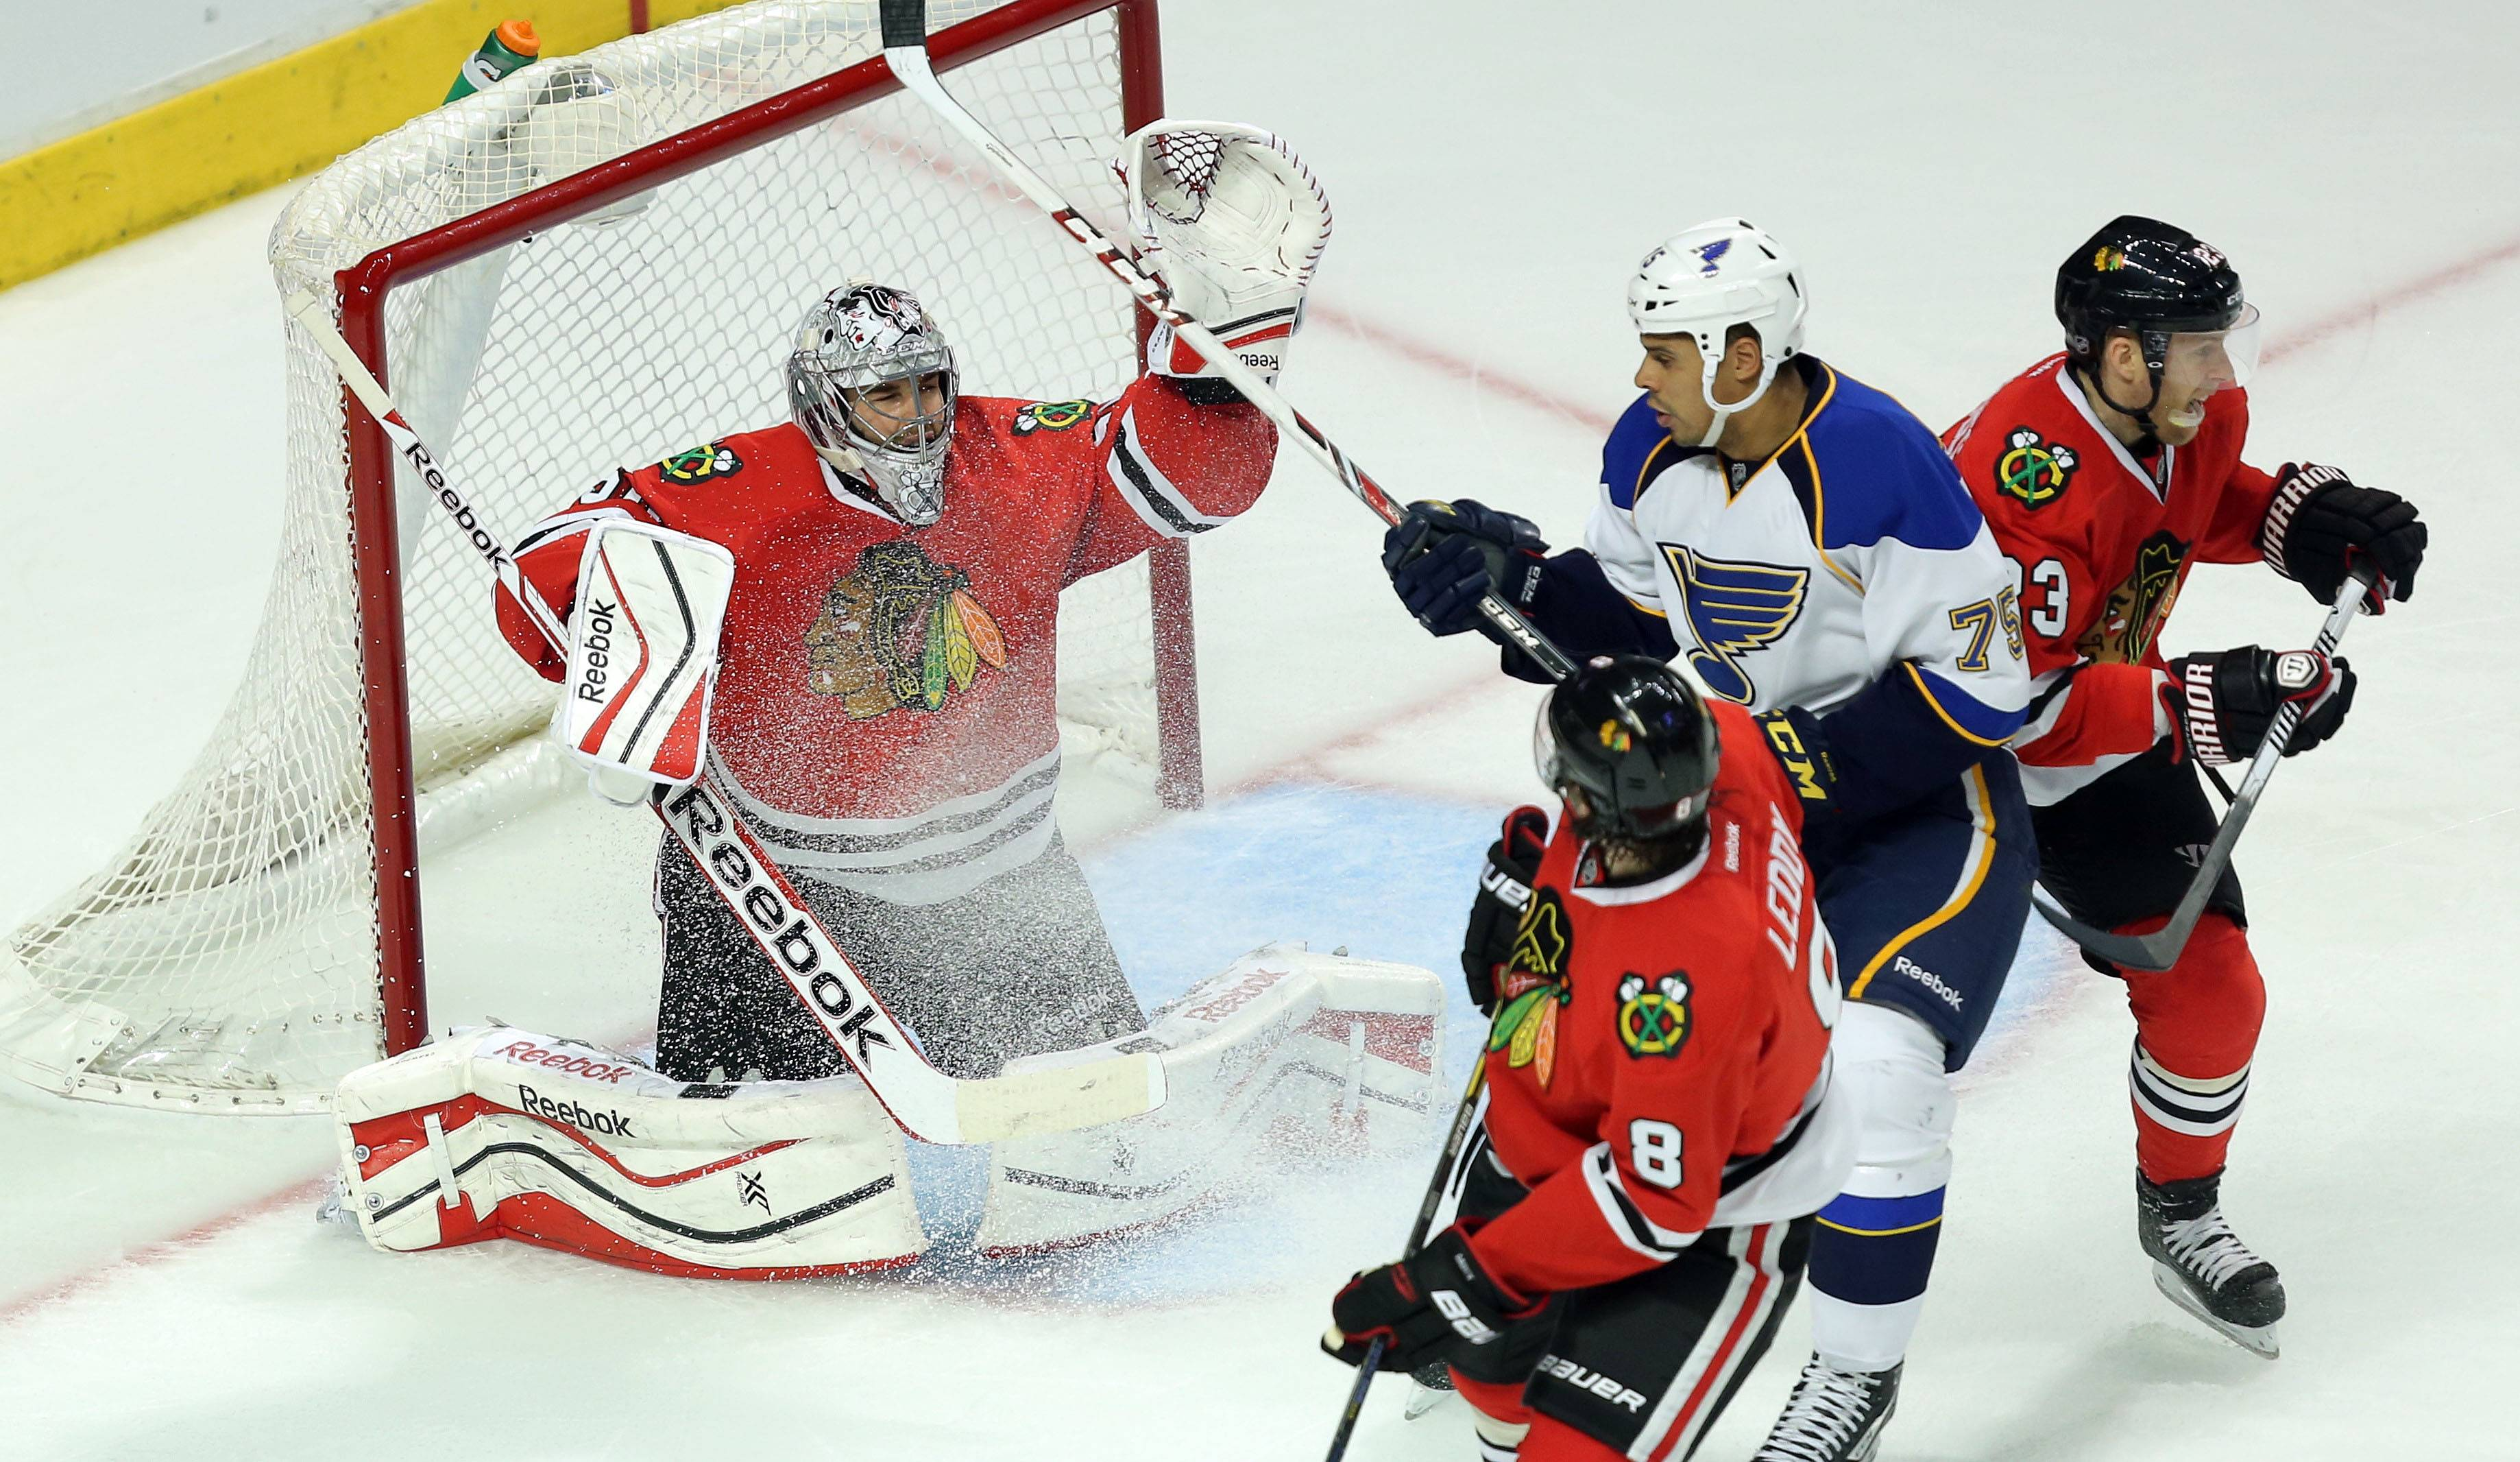 Chicago Blackhawks goalie Corey Crawford deflects the puck.